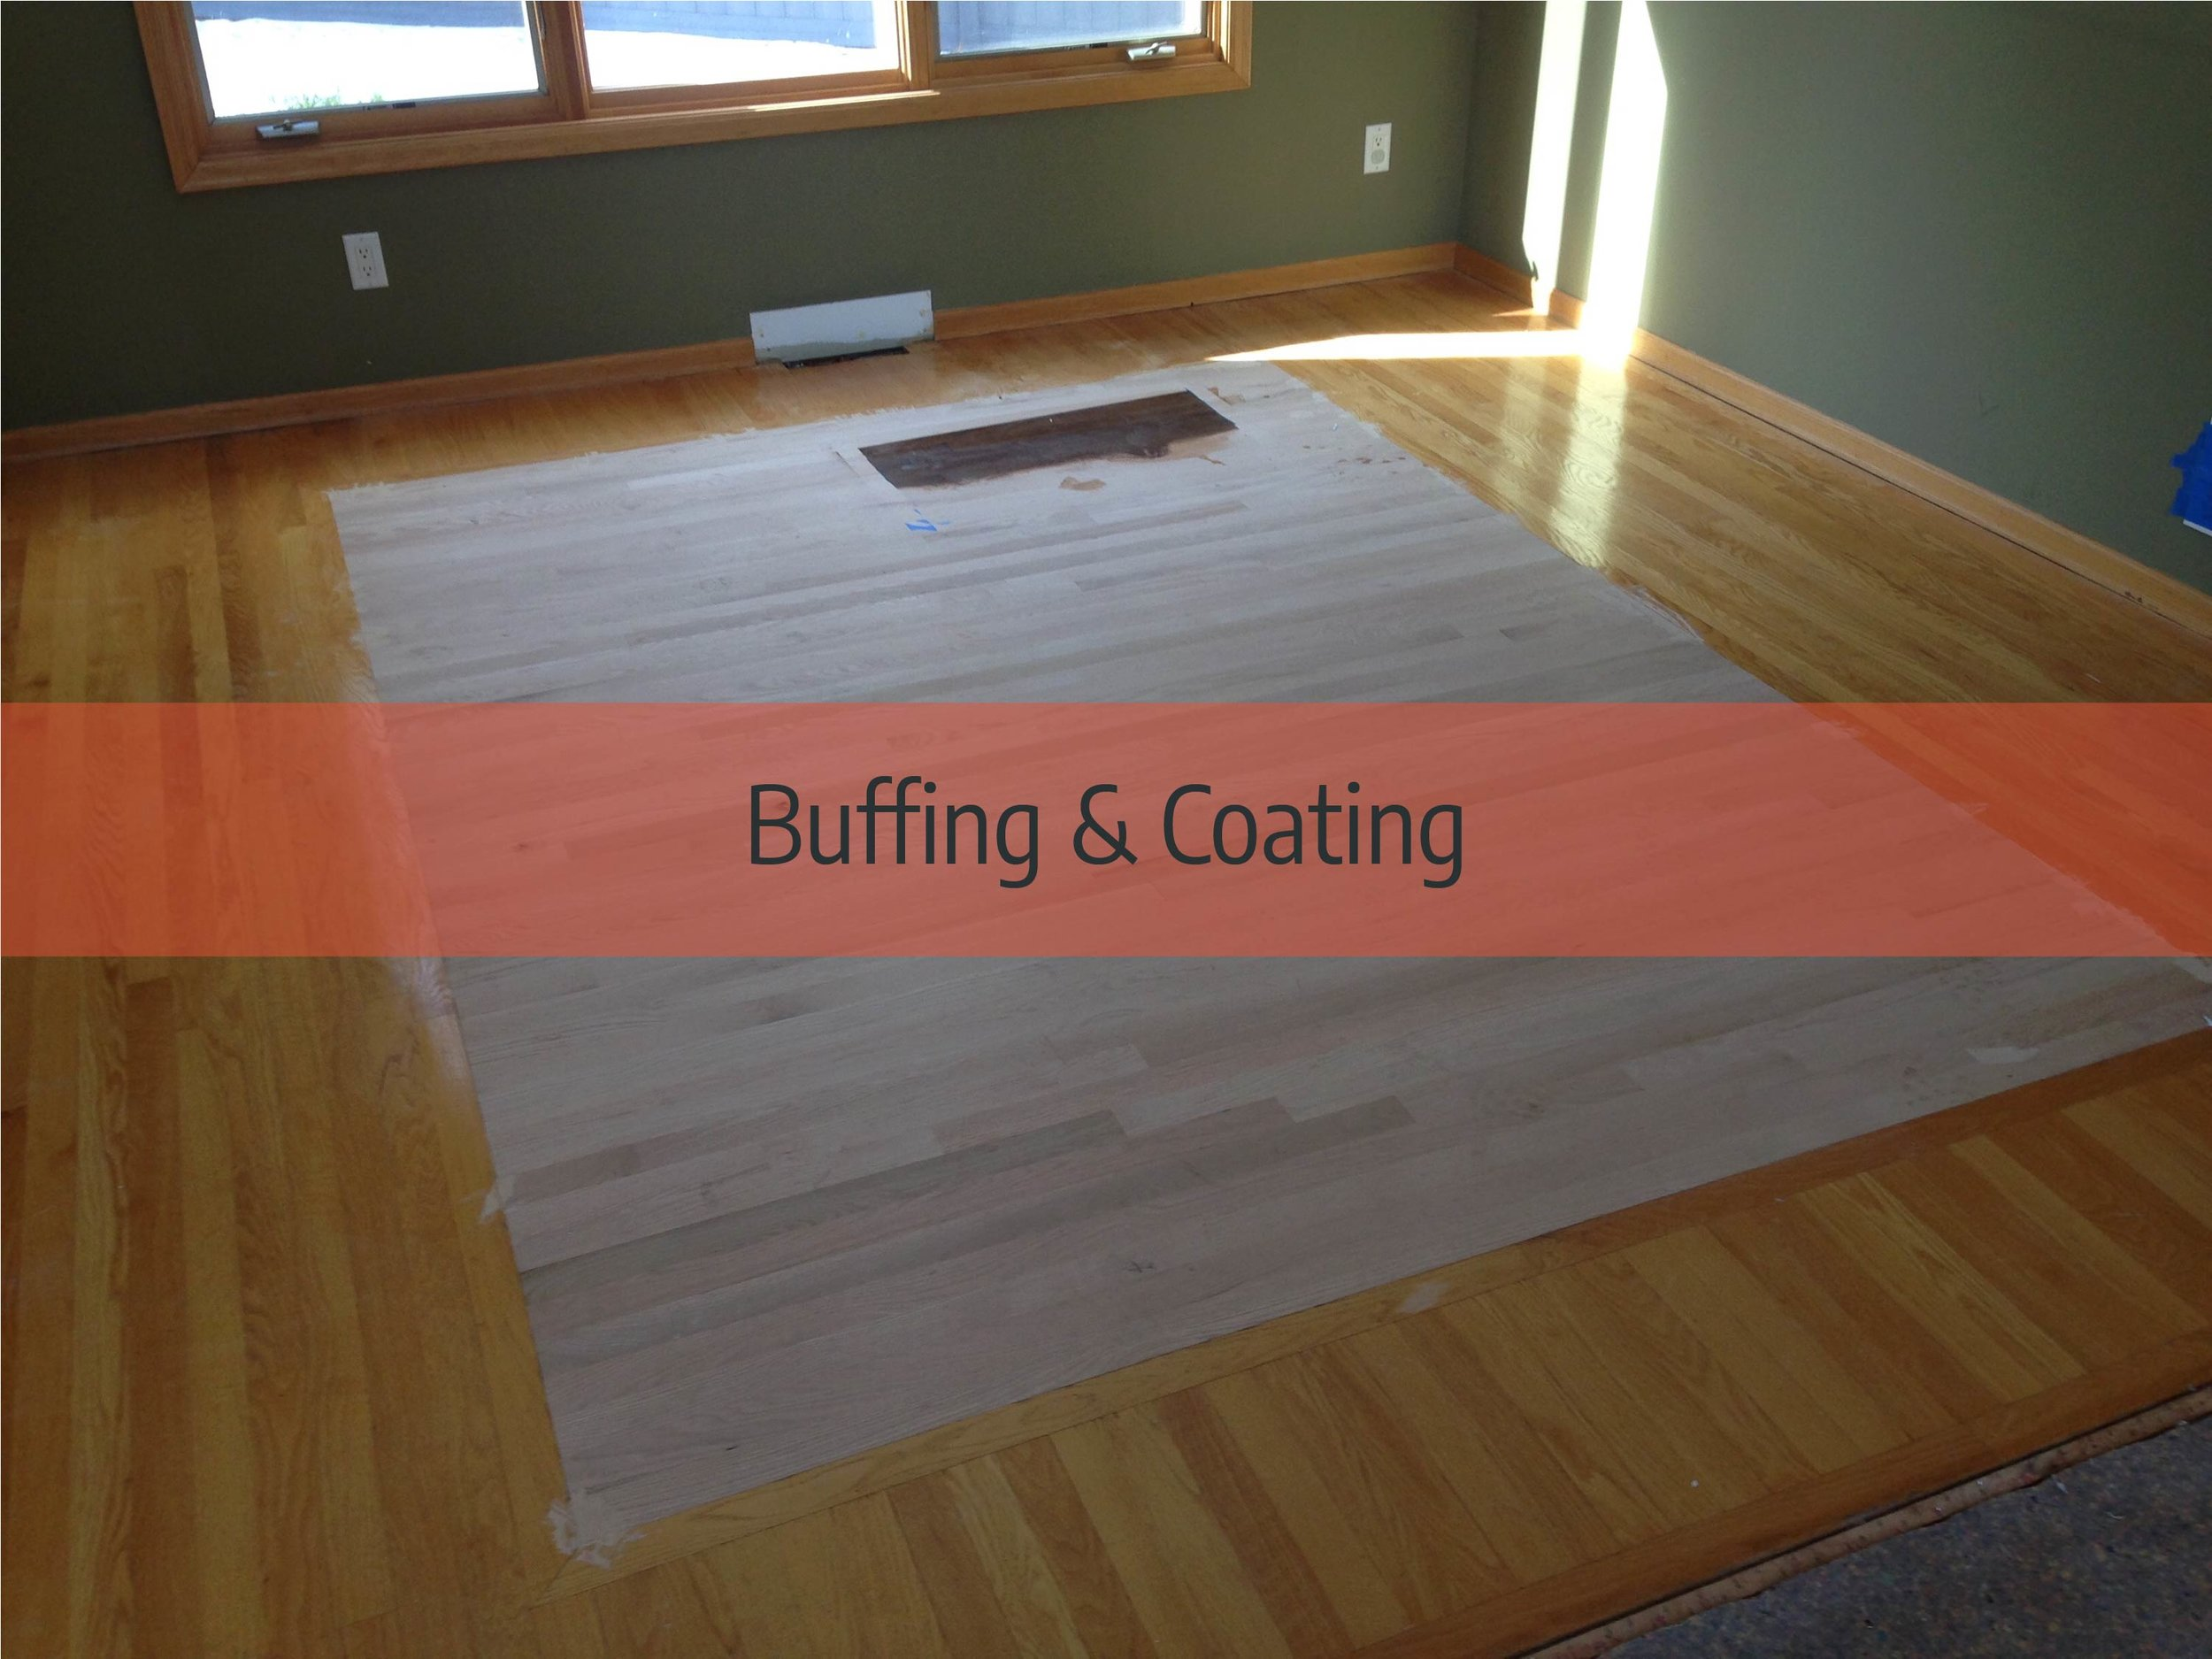 hardwood floor buffing & coating